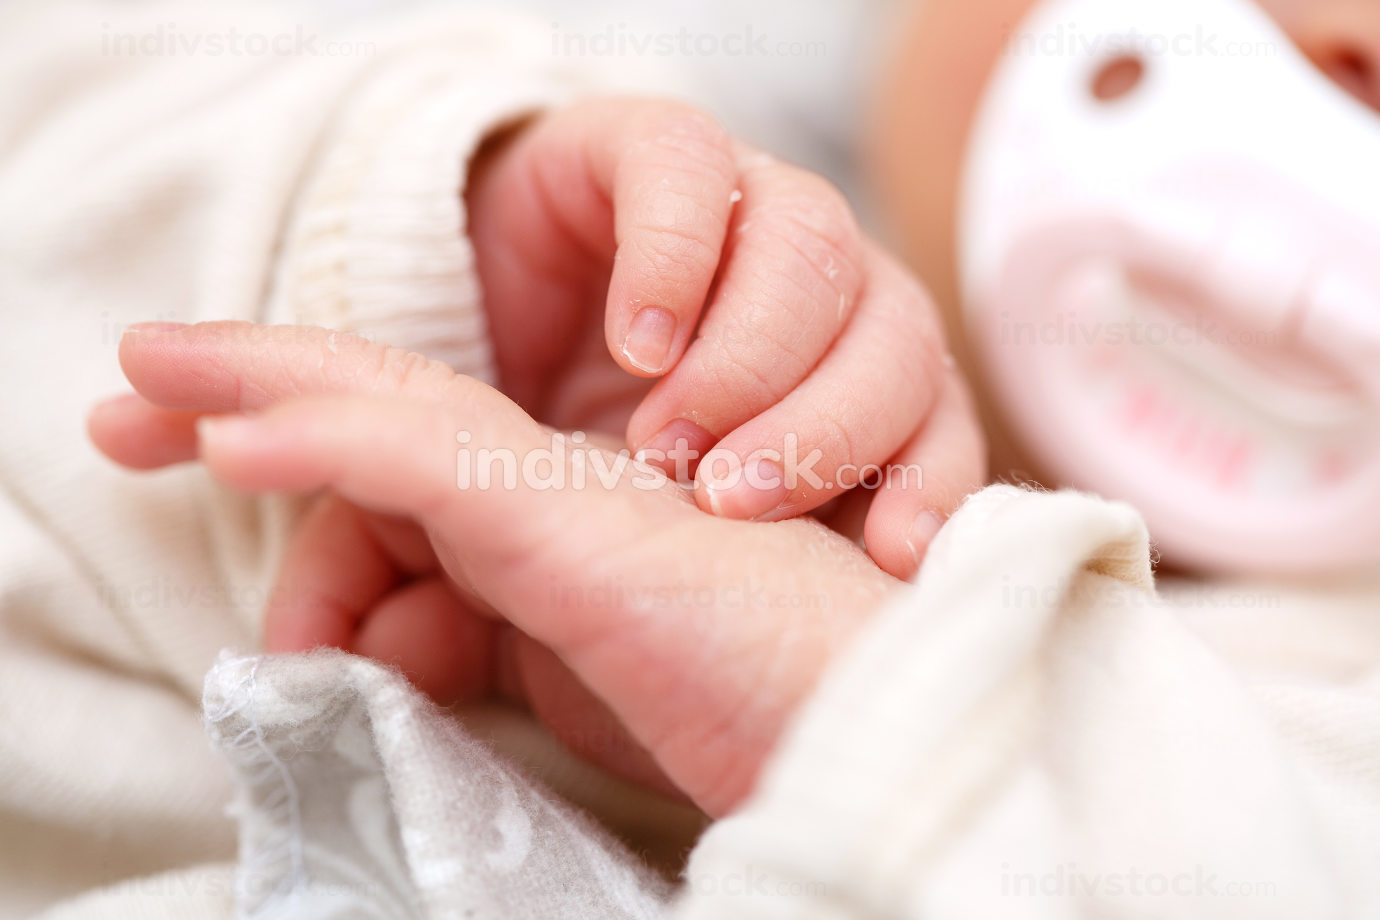 small fingers, hands of a newborn baby close-up. small depth of focus area